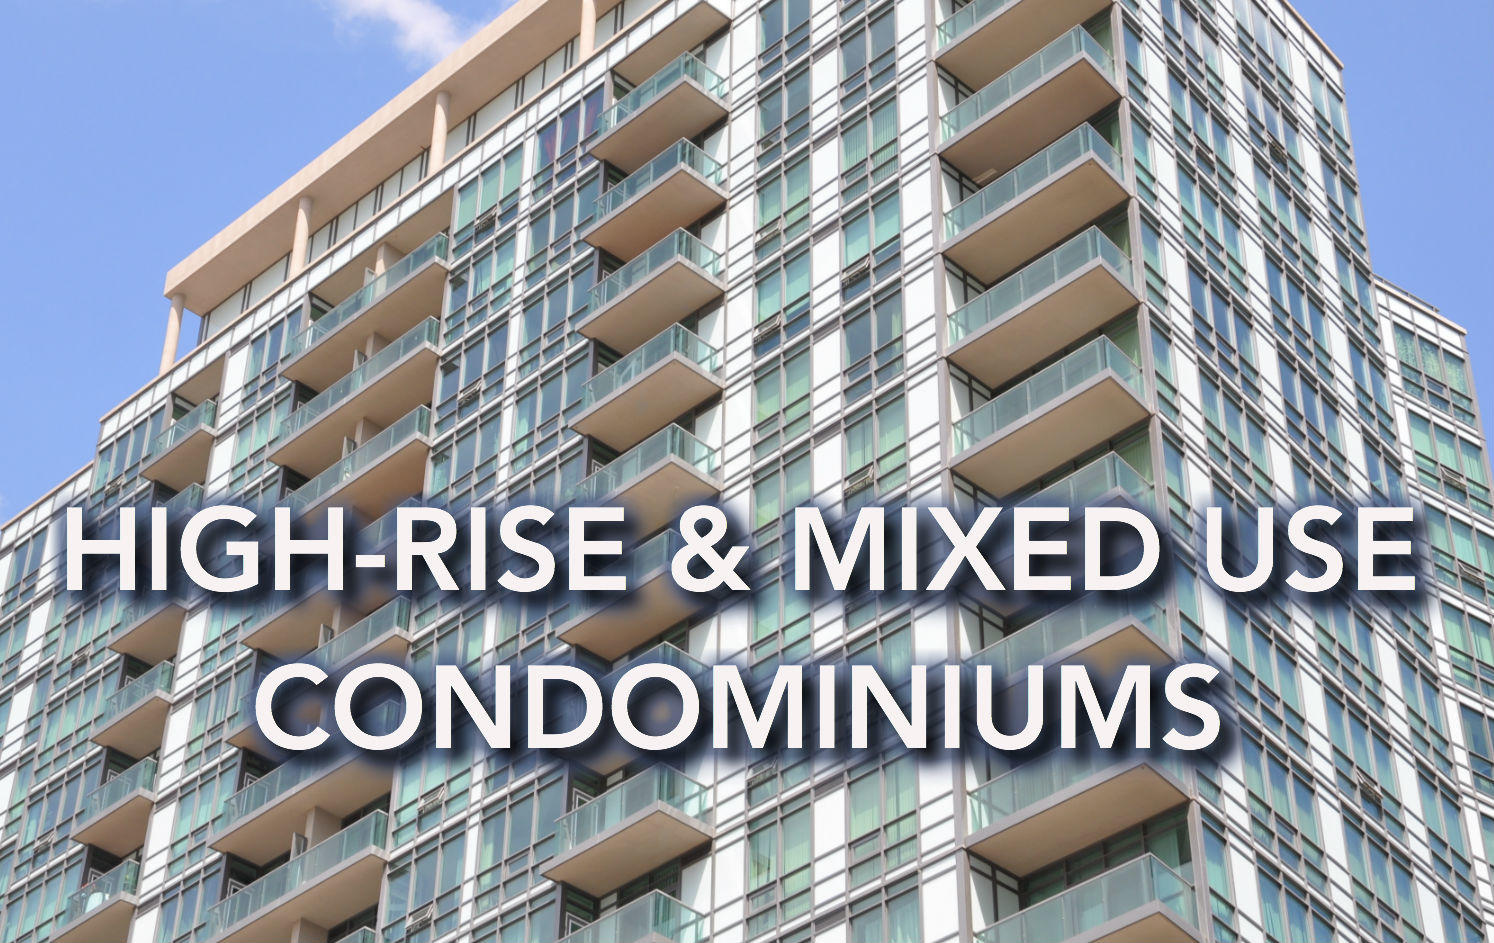 High-rise condominium lawyers and attrneys in Maryland and Washington DC